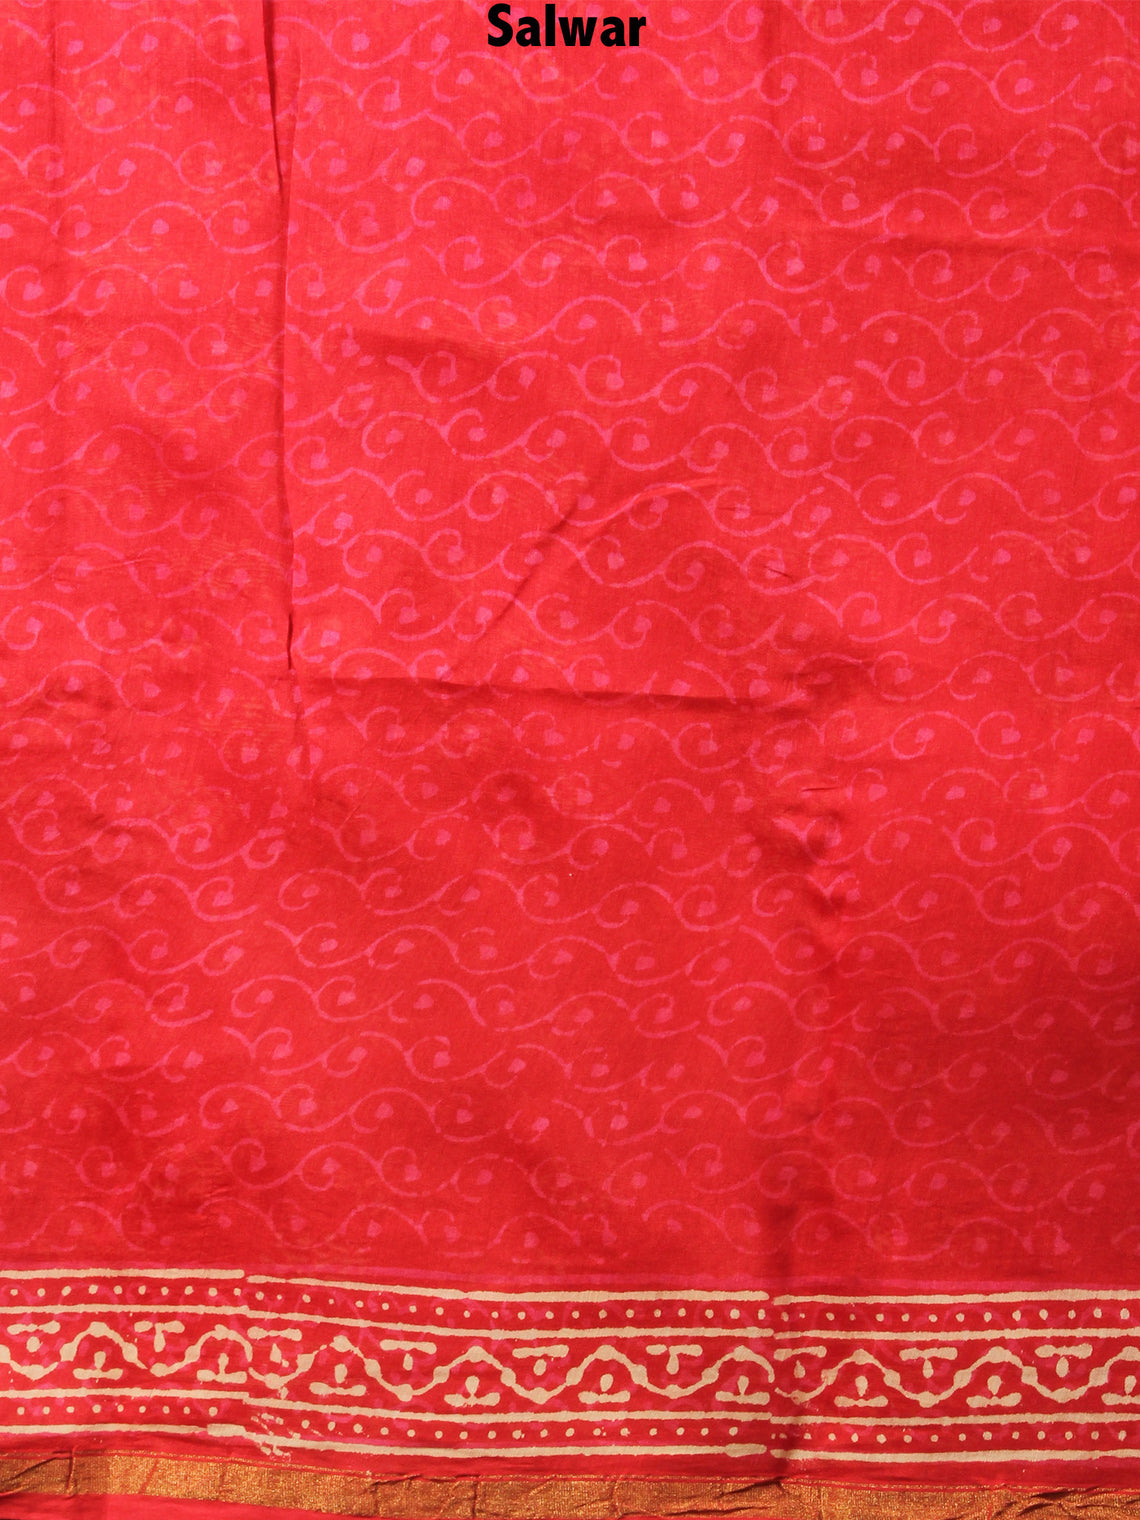 Deep Red Beige Hand Block Printed Chanderi Kurta-Salwar Fabric With Chanderi Dupatta - S1628082